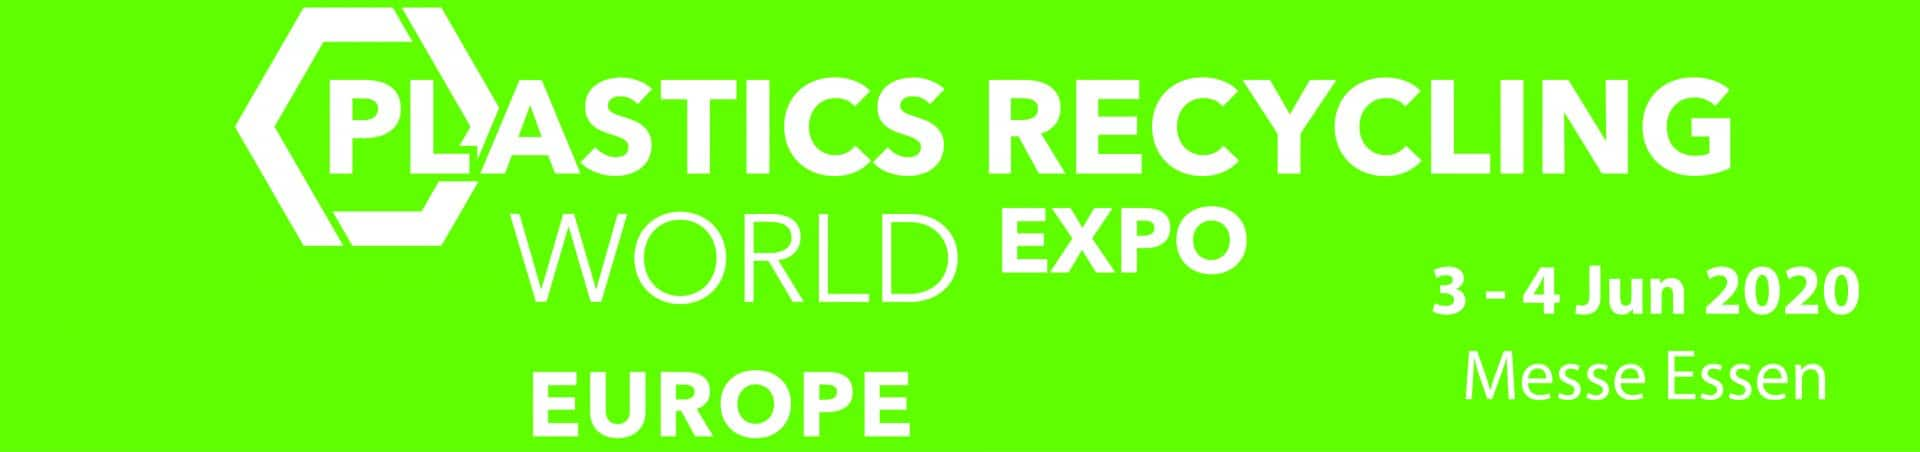 Plastics Recycling World Expo, 3 - 4 June, Essen, Germany